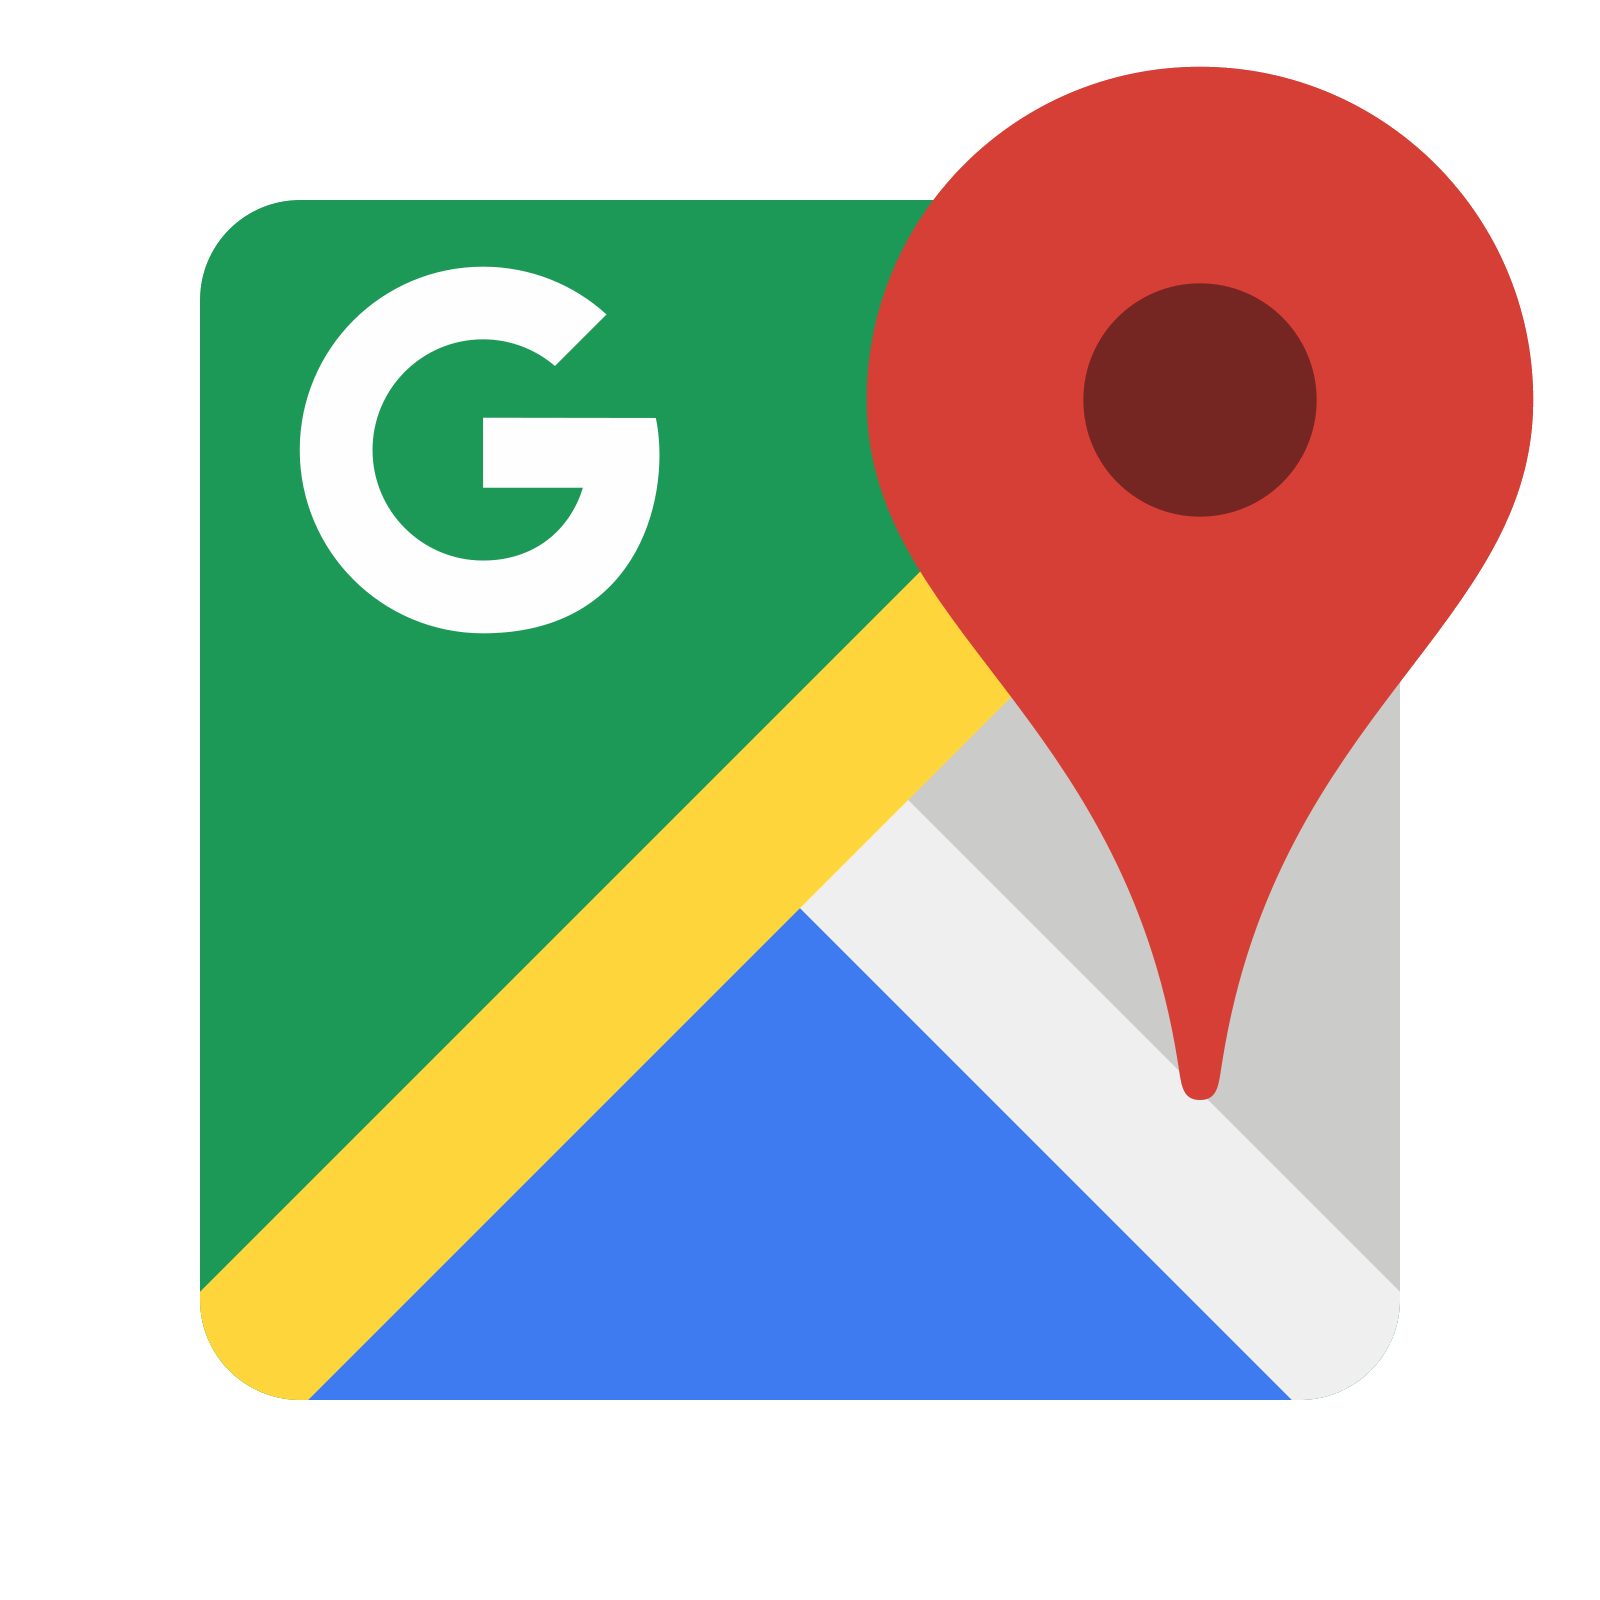 click here to see on Google Maps